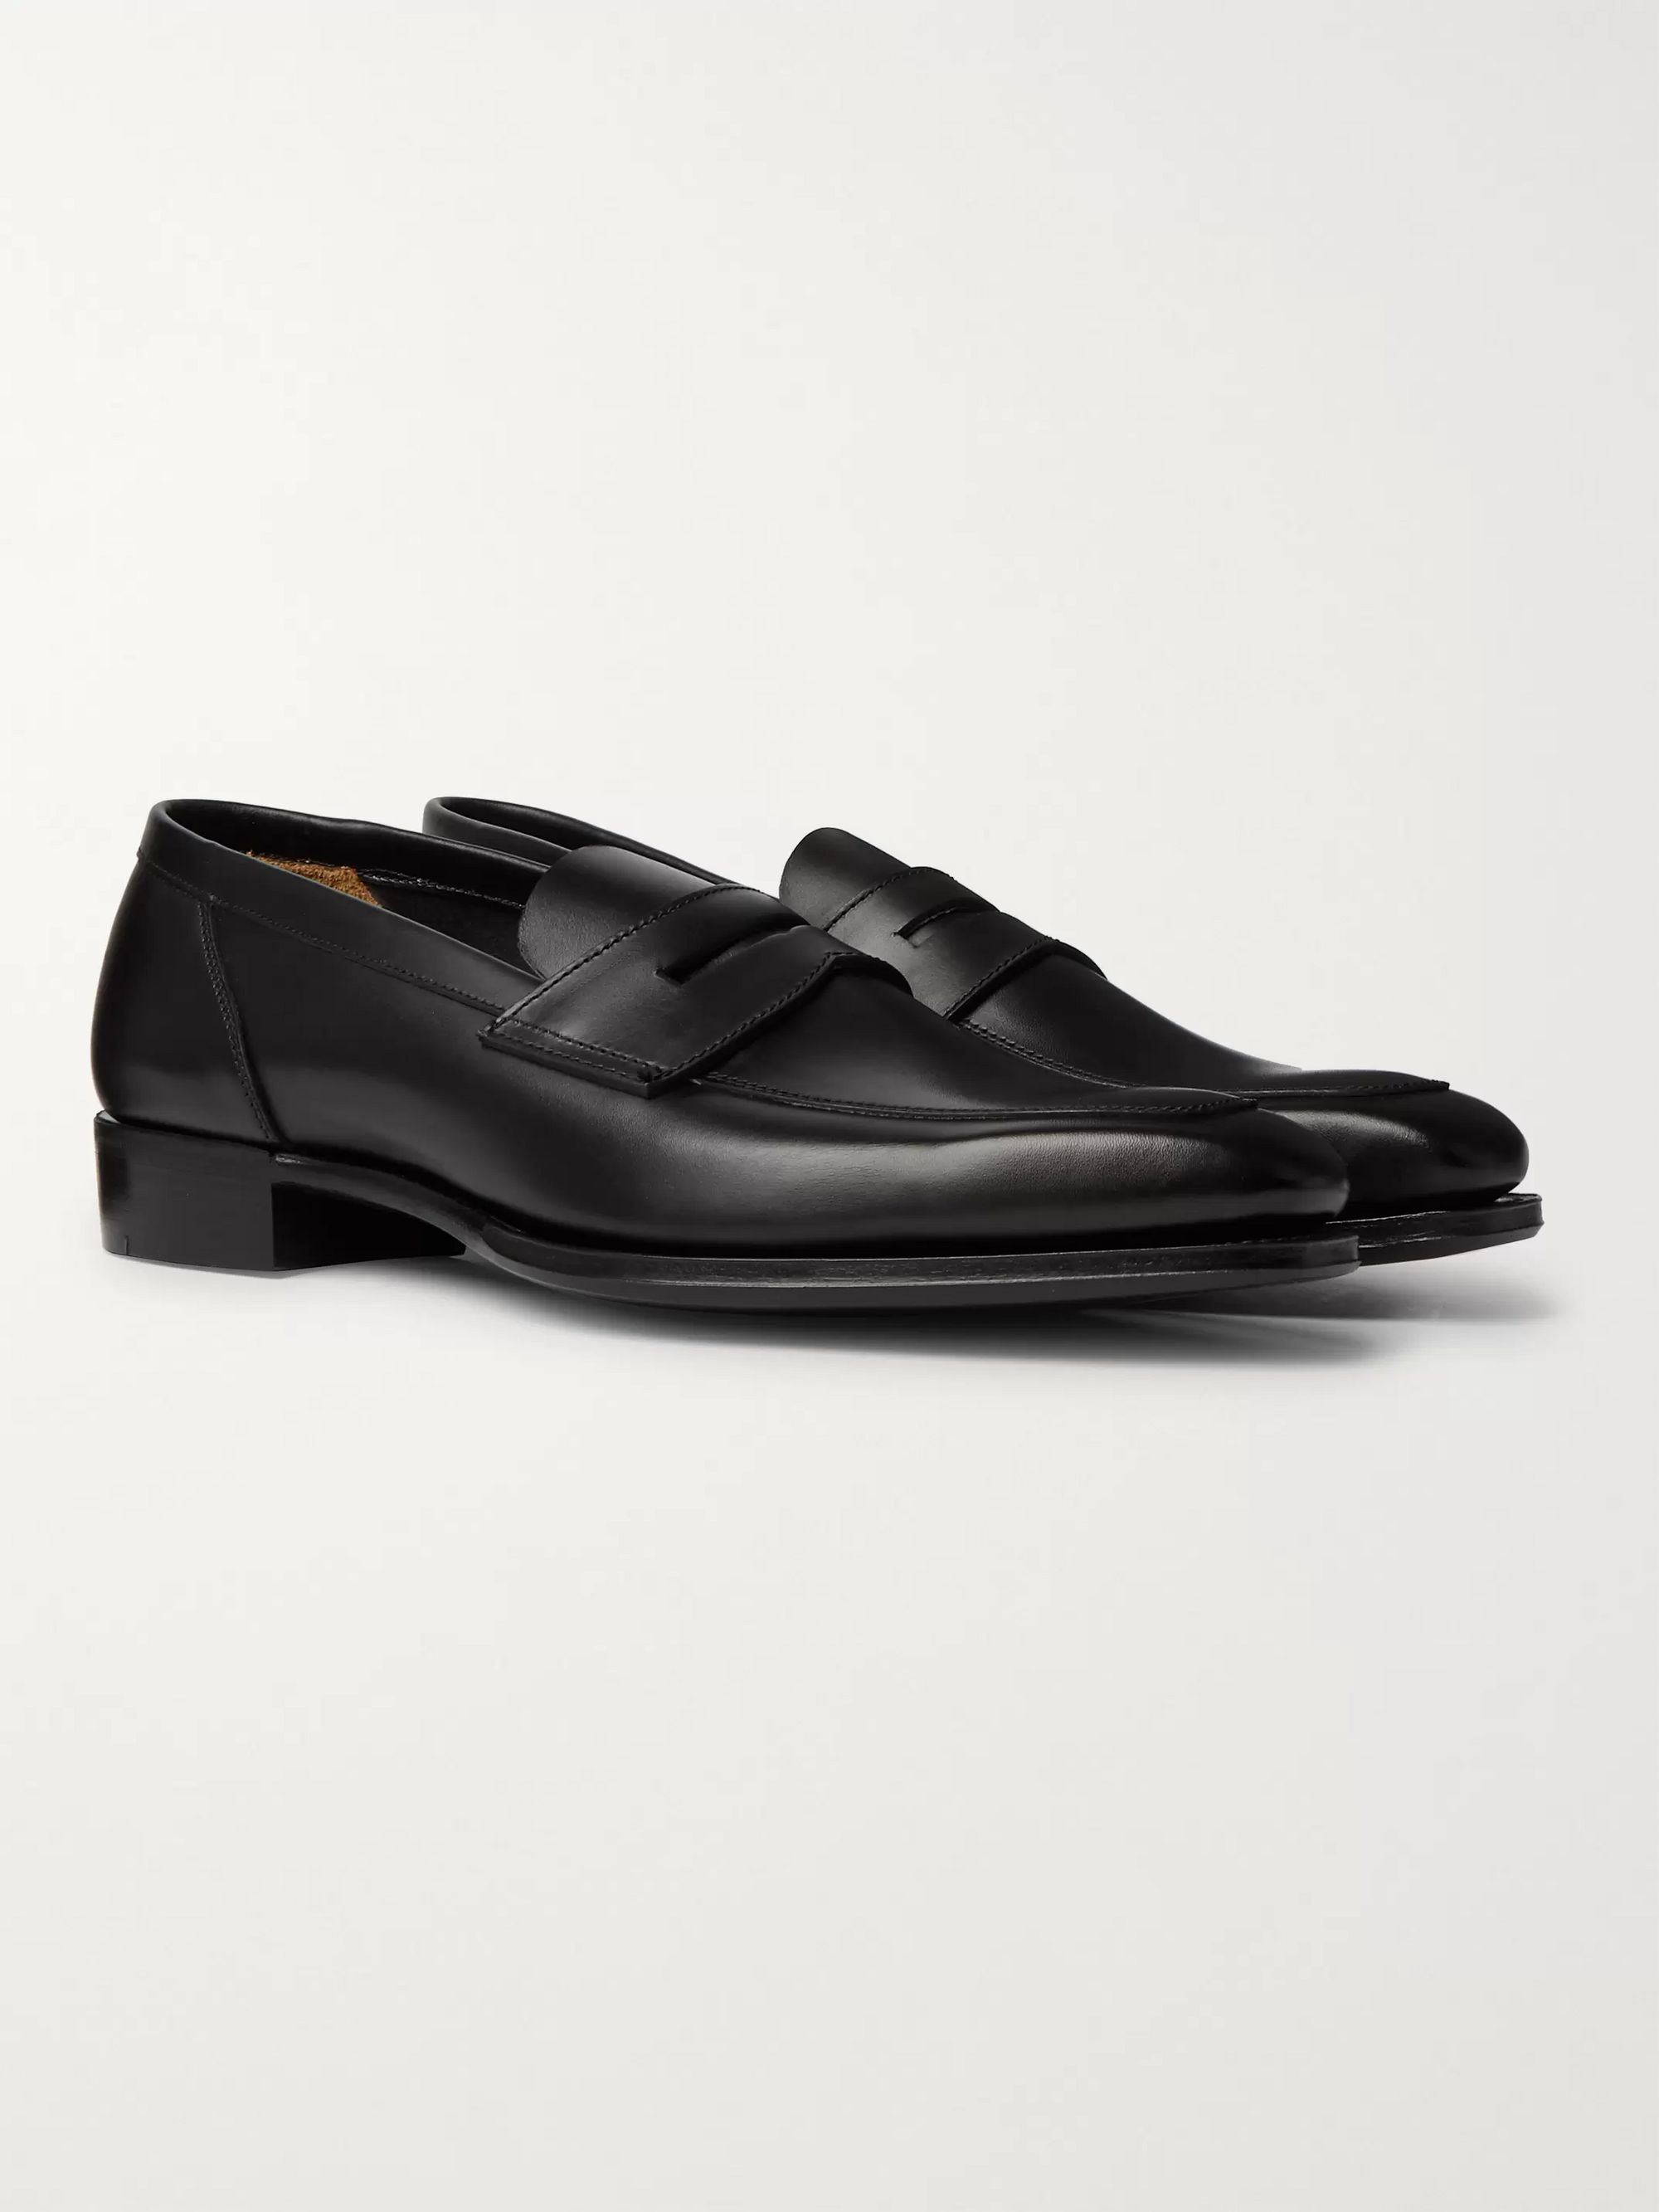 Kingsman + George Cleverley Leather Penny Loafers